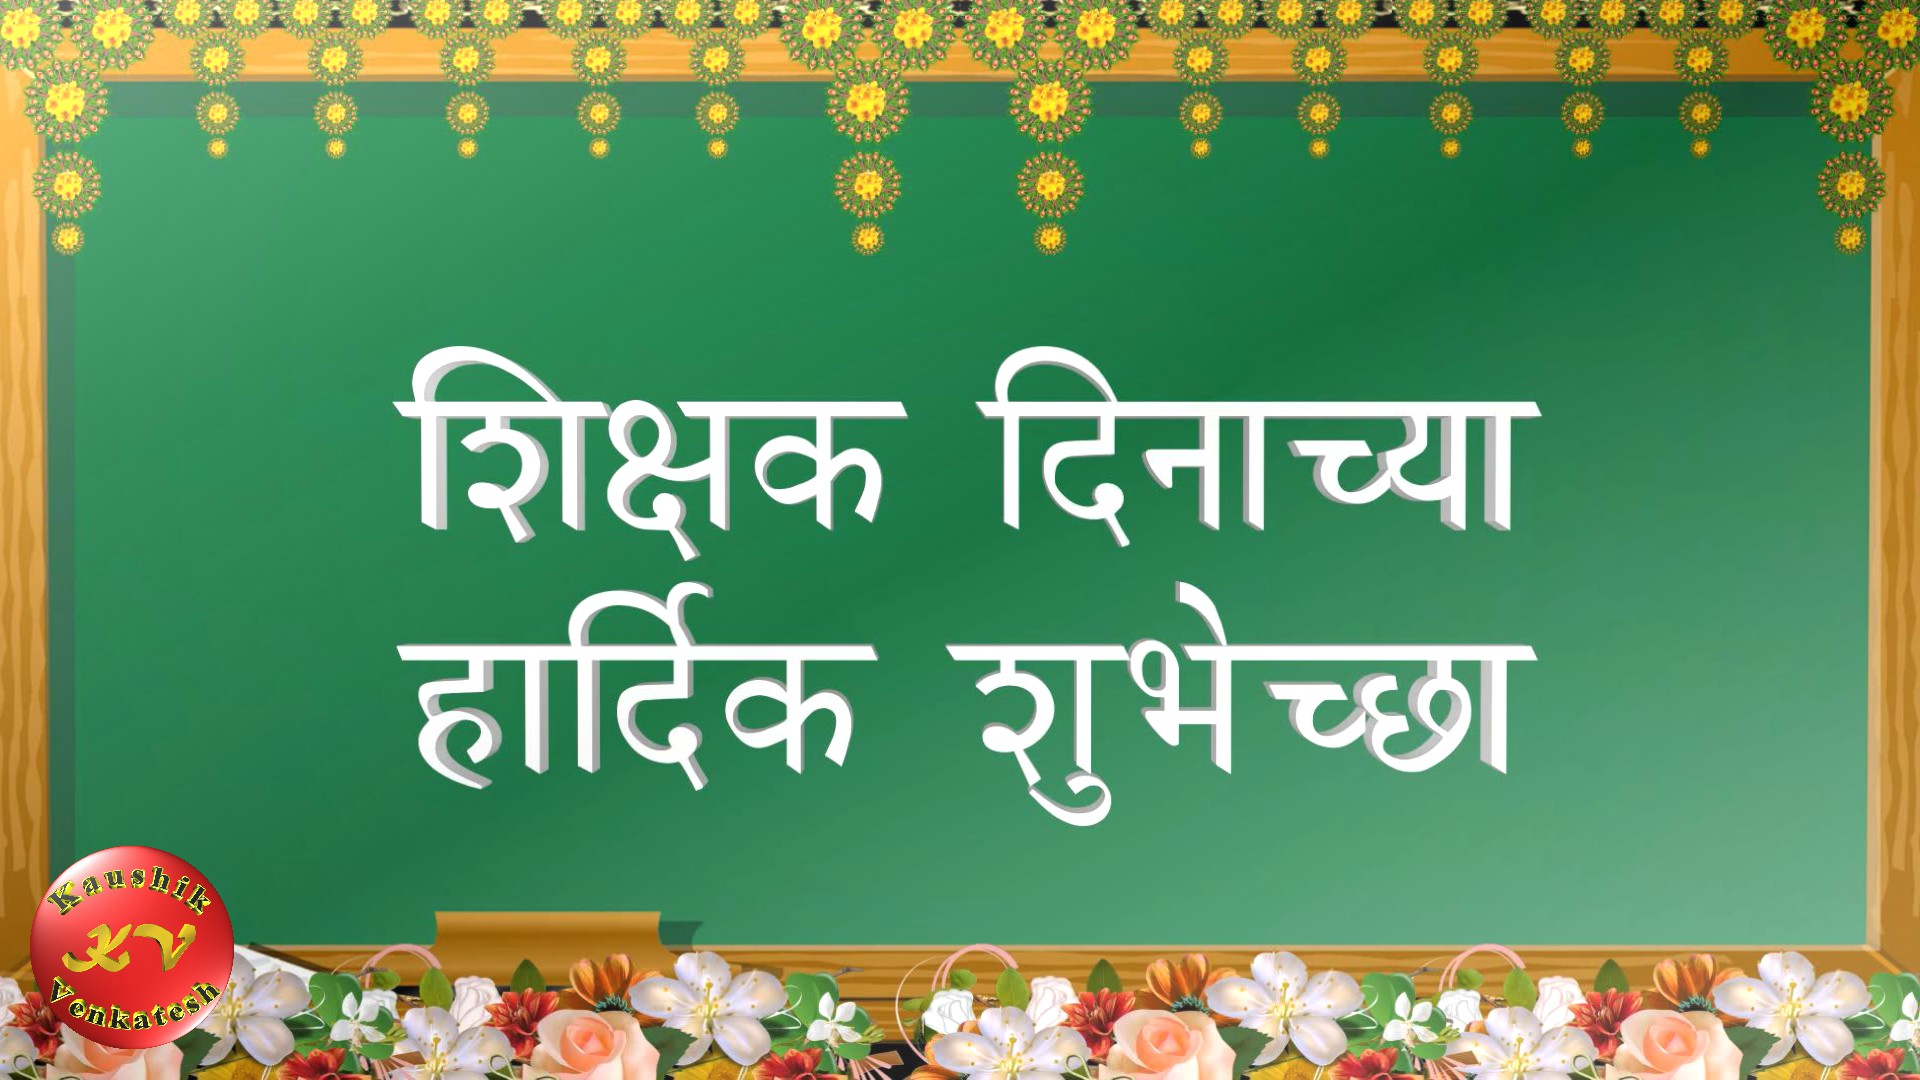 Greetings Image for September 5th (Teacher's Day) in Marathi